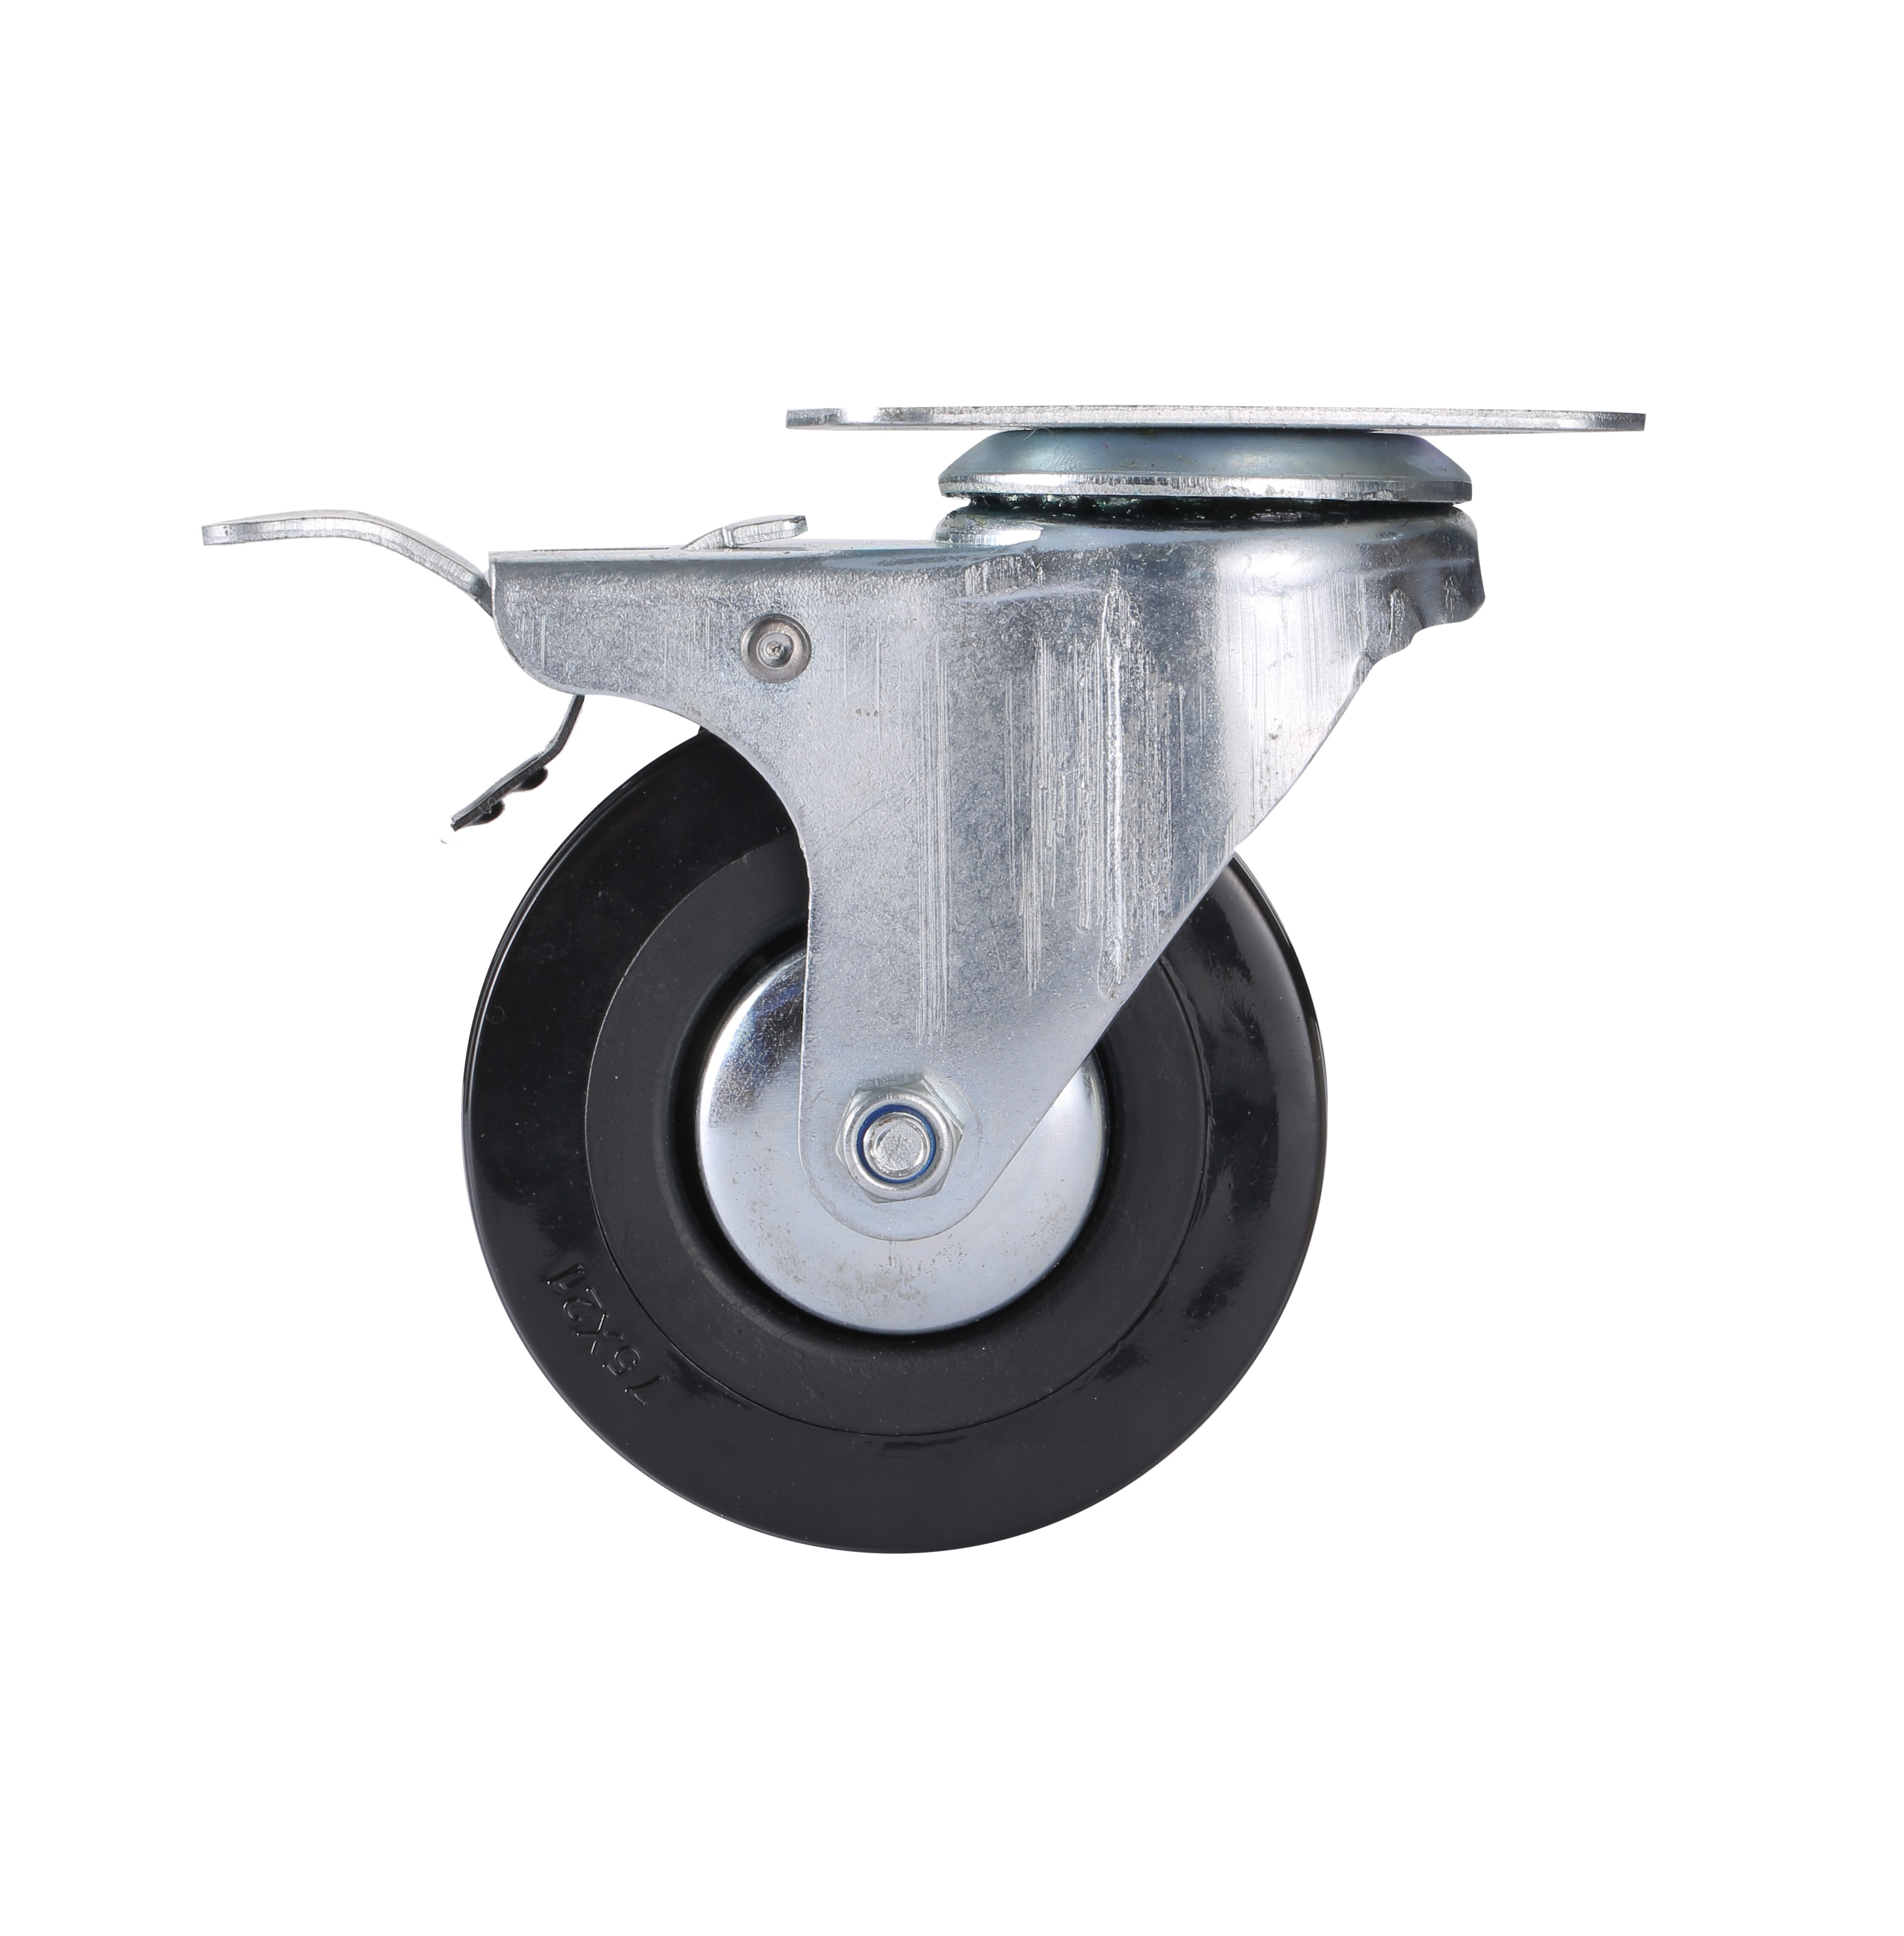 2.5'' Light Duty PVC Plate Swivel Caster Wheels with Brakes